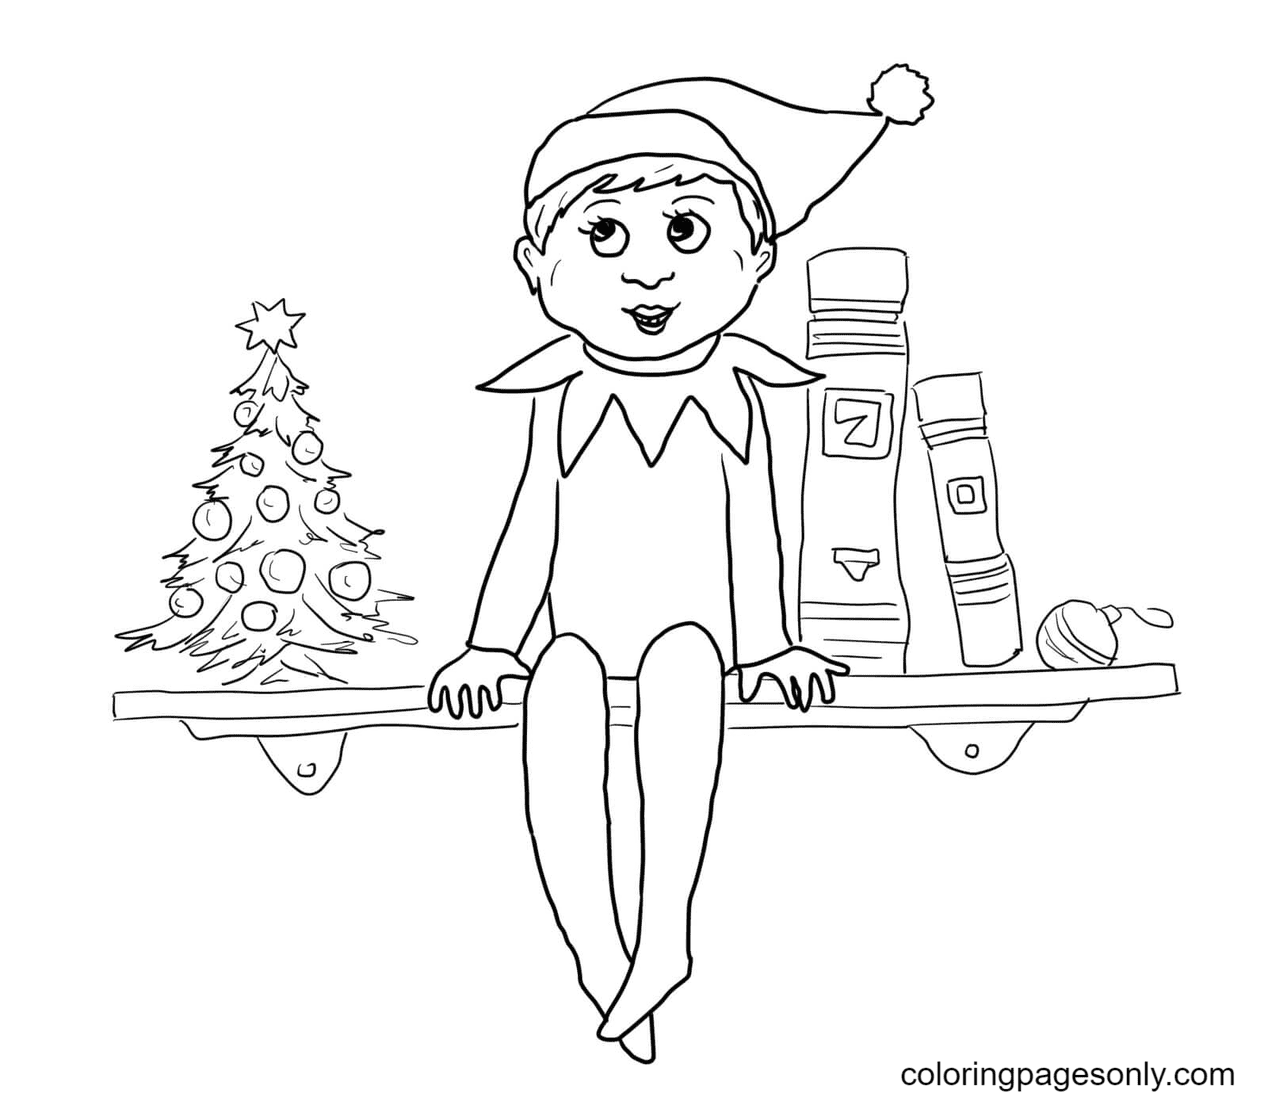 Elf Sitting on The Shelf Coloring Page